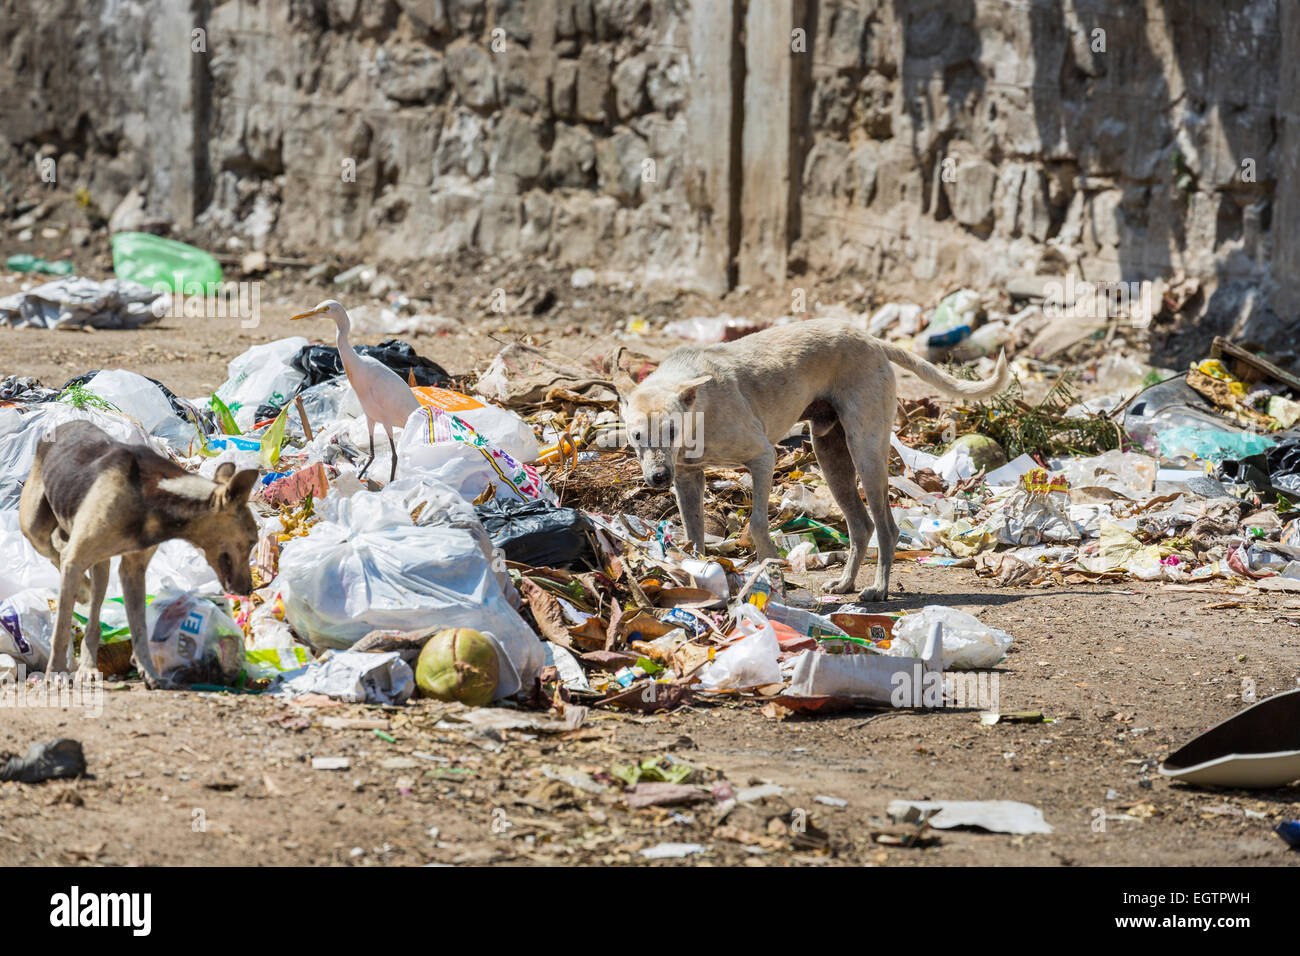 Image result for animals scavenging landfill